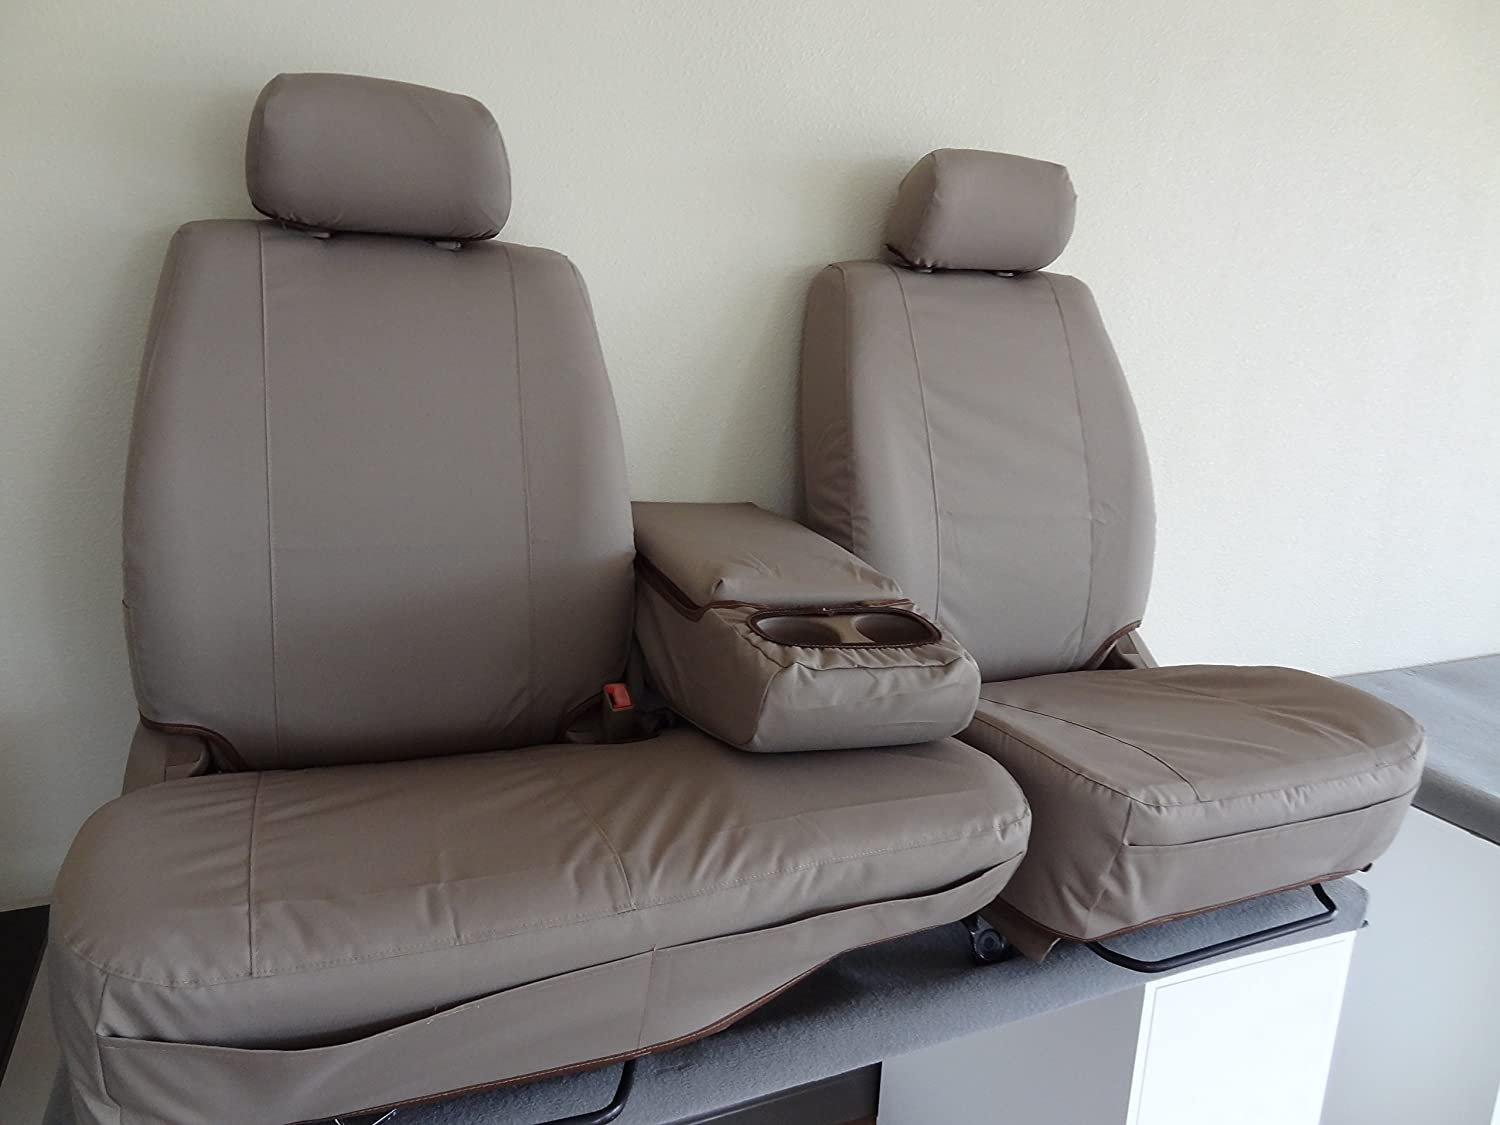 Seat Covers in Brown Automotive Twill. T787-D4 Durafit Seat Covers ...